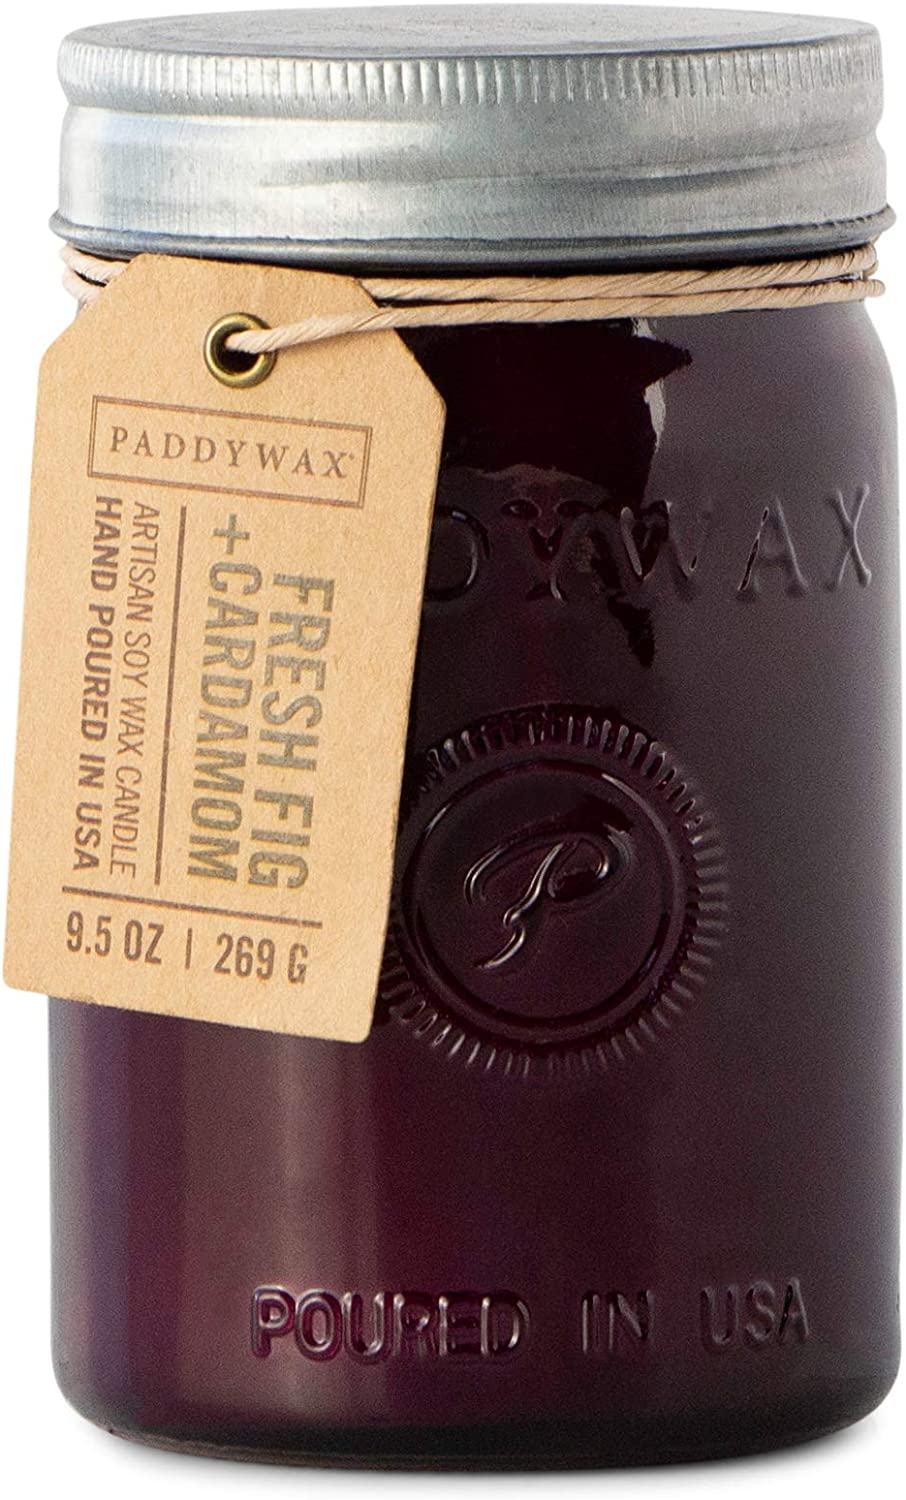 Paddywax Candles RJ808Z Relish Collection Scented Candle, 9.5-Ounce, Fresh Fig + Cardamom